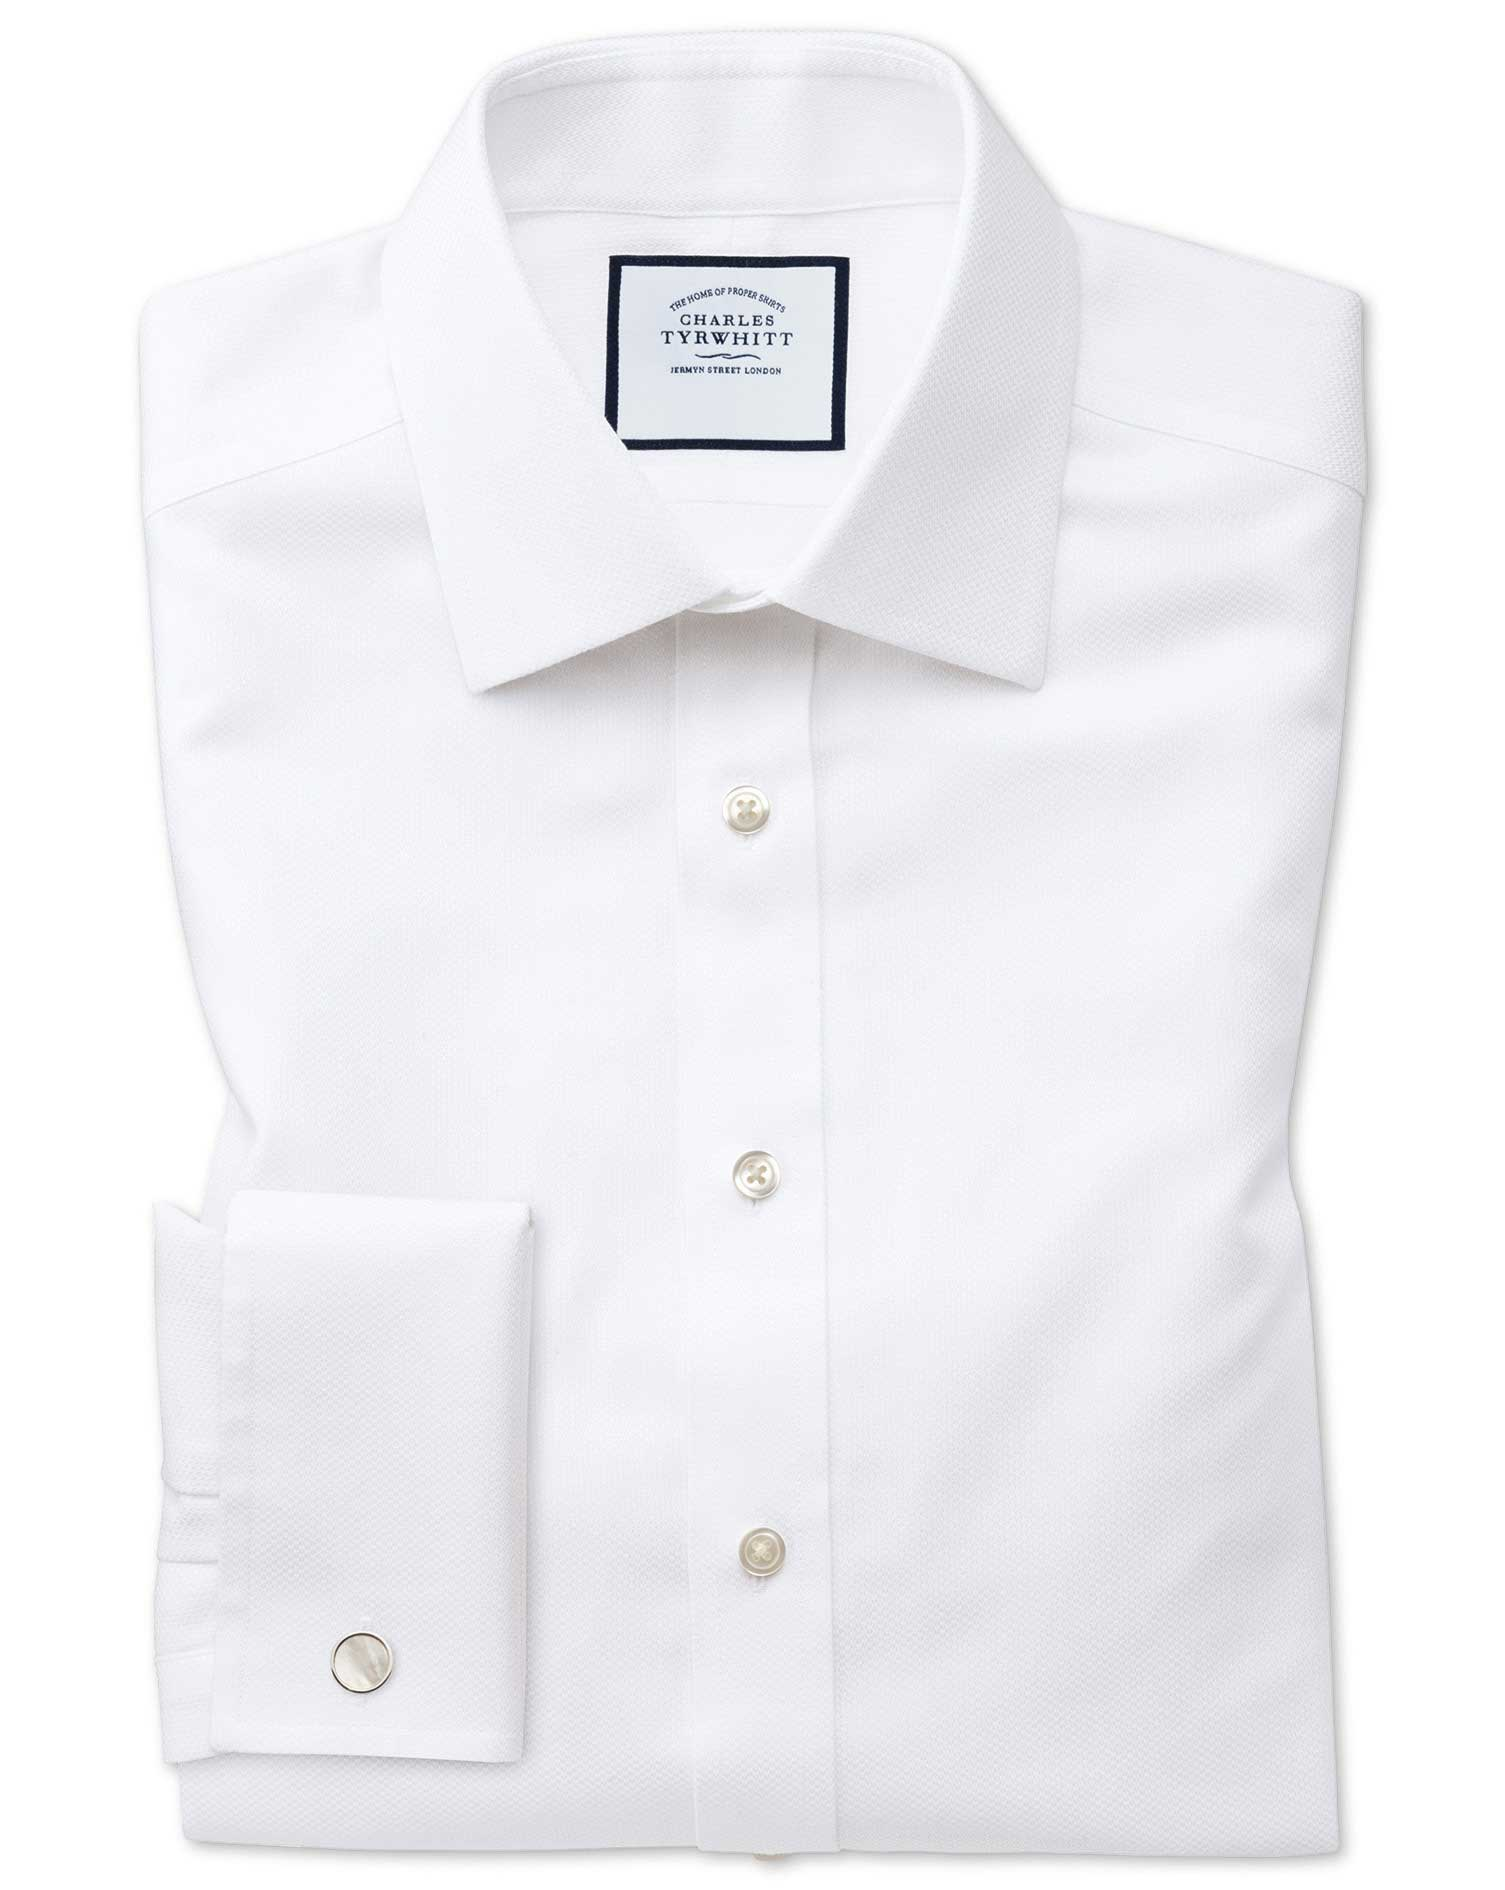 Classic Fit Non-Iron White Arrow Weave Cotton Formal Shirt Double Cuff Size 16.5/35 by Charles Tyrwh